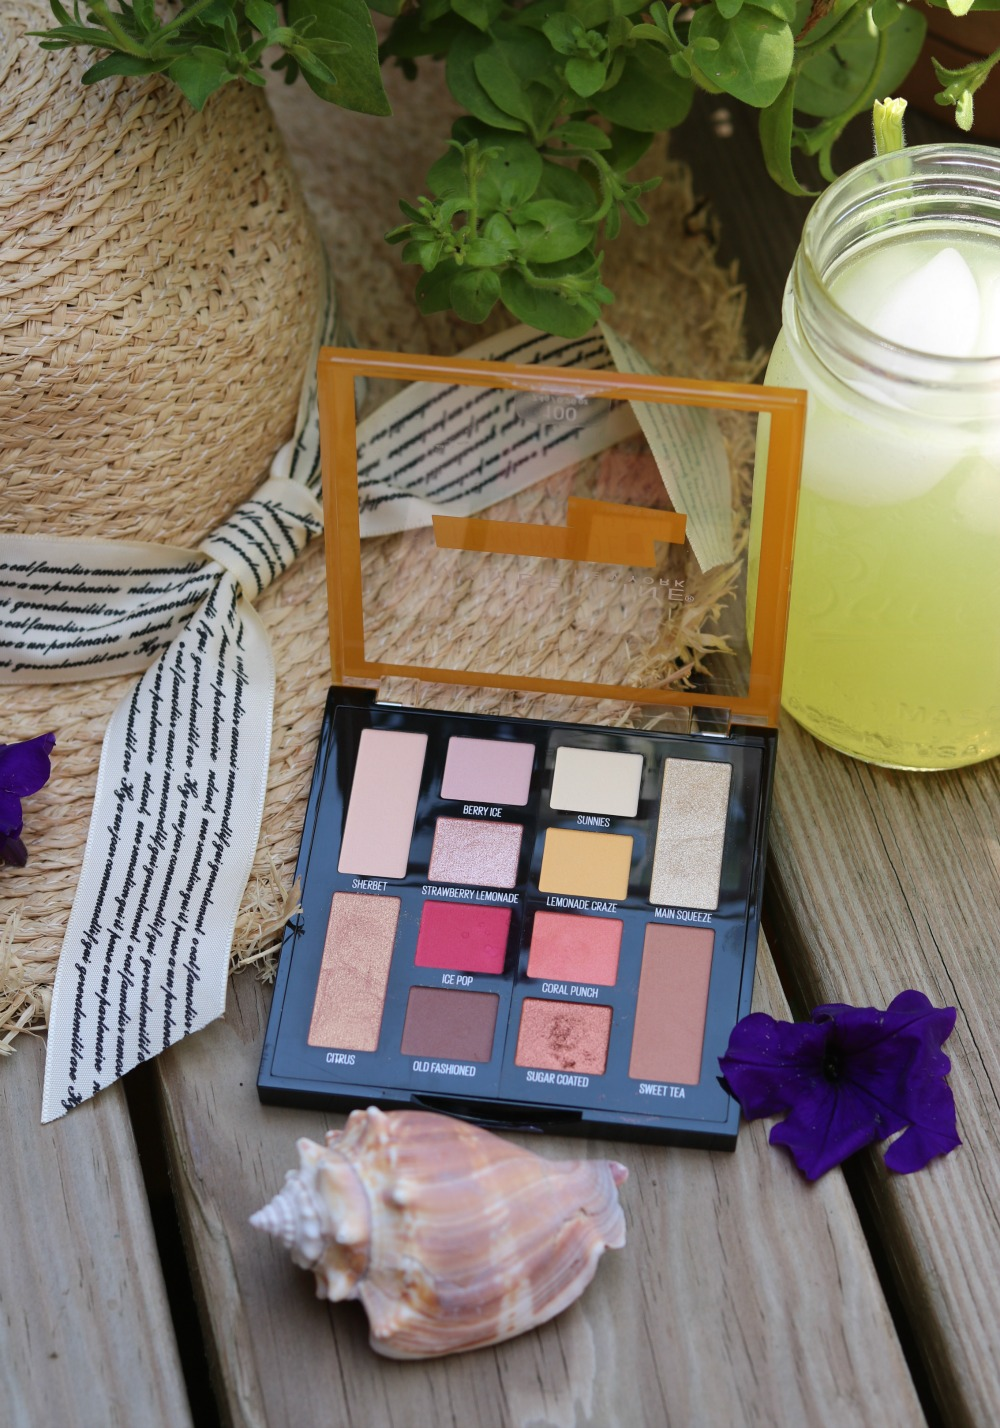 Maybelline Lemonade Craze Eyeshadow Palette Review I DreaminLace.com #Maybelline #DrugstoreMakeup #SummerMakeup #BeautyBlogger